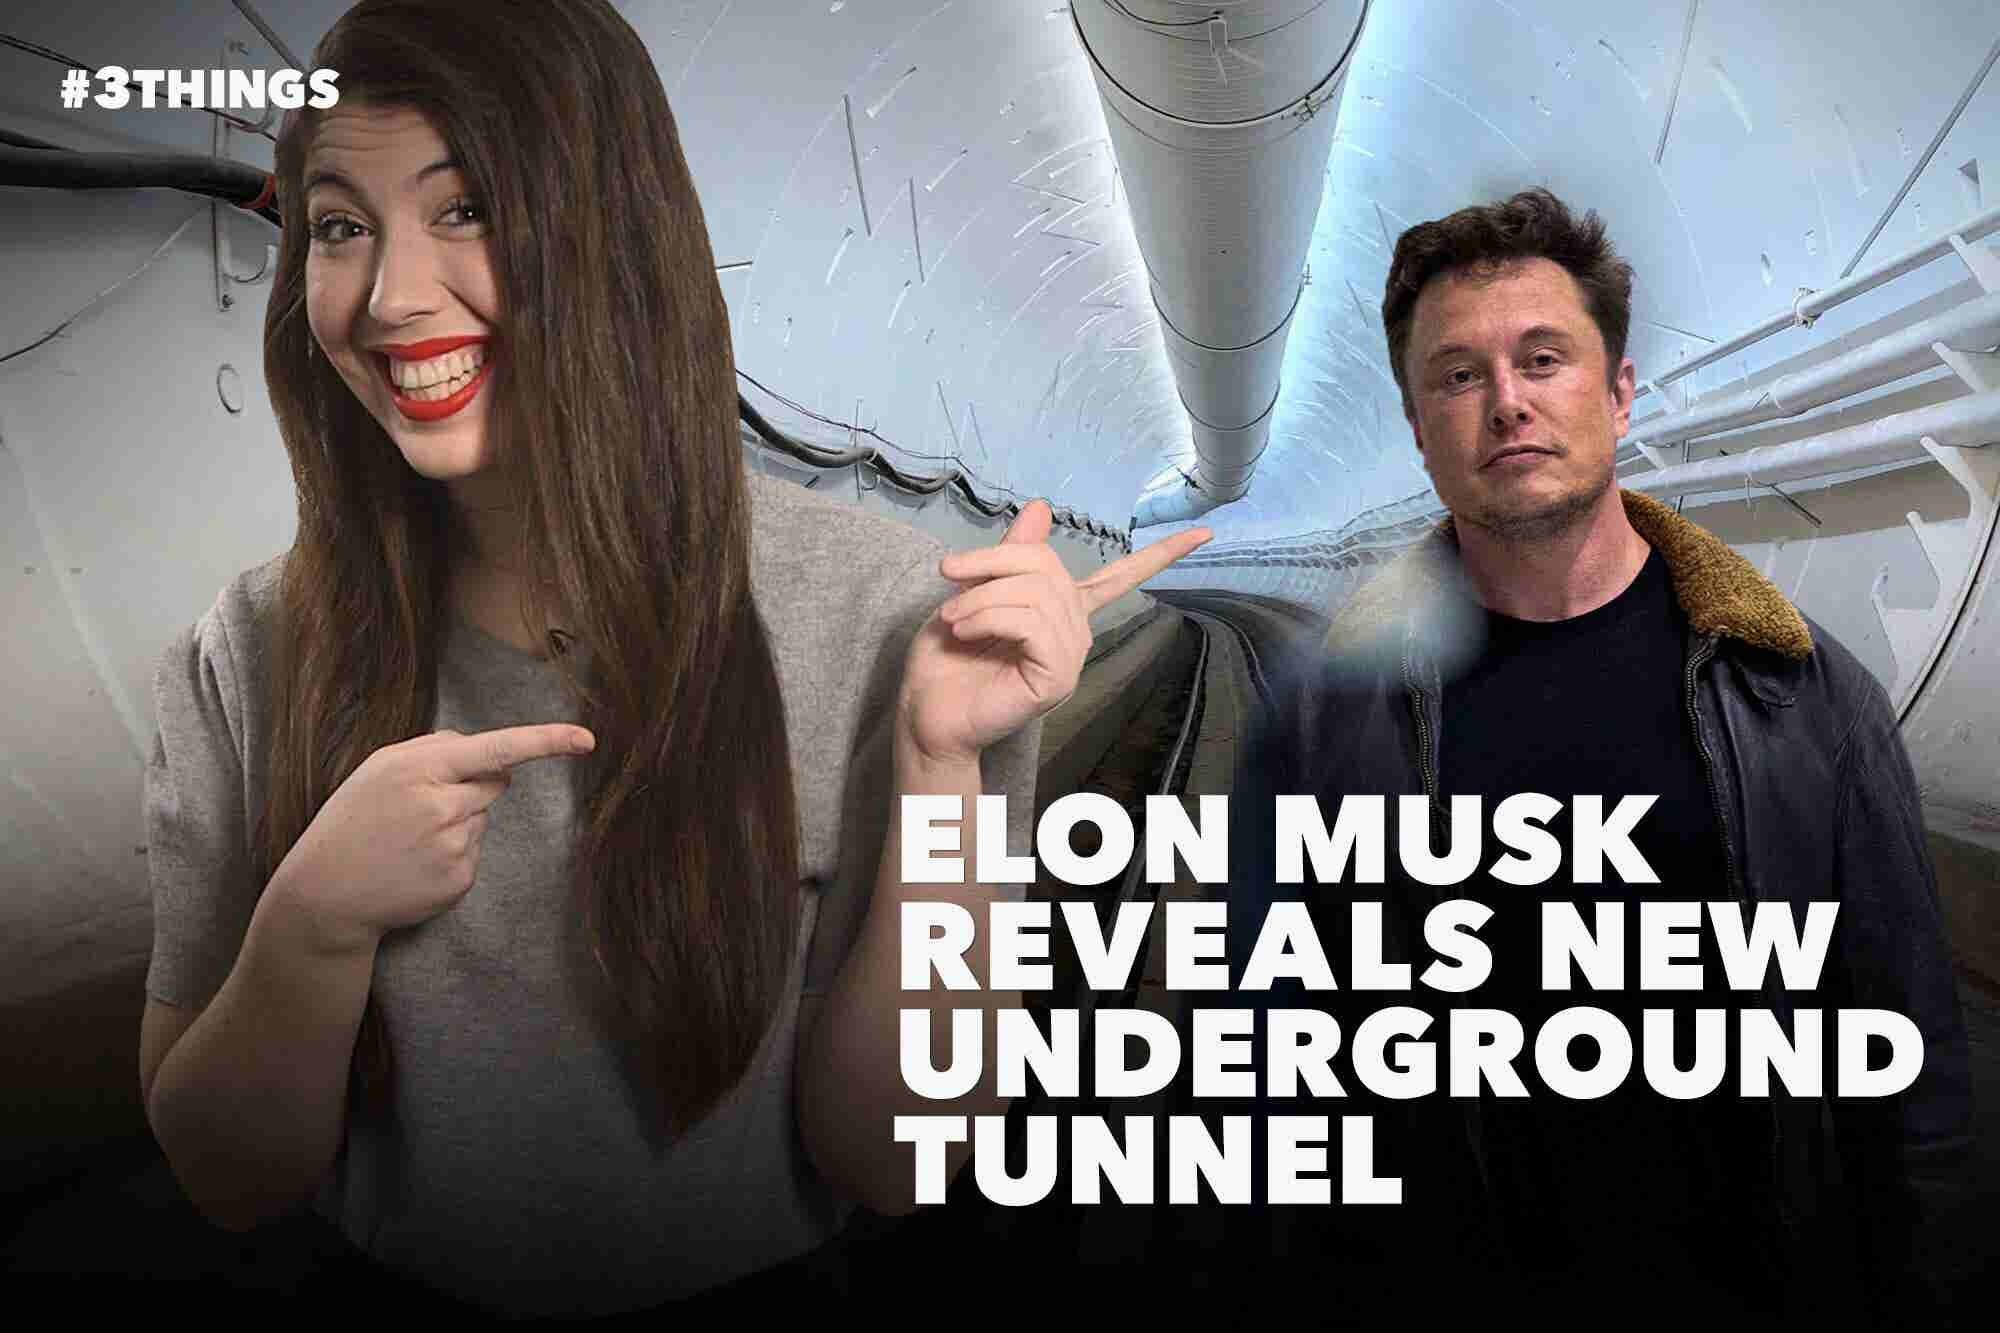 Elon Musk Reveals Tunnel, Facebook Hit With New Data Scandal and Cross...